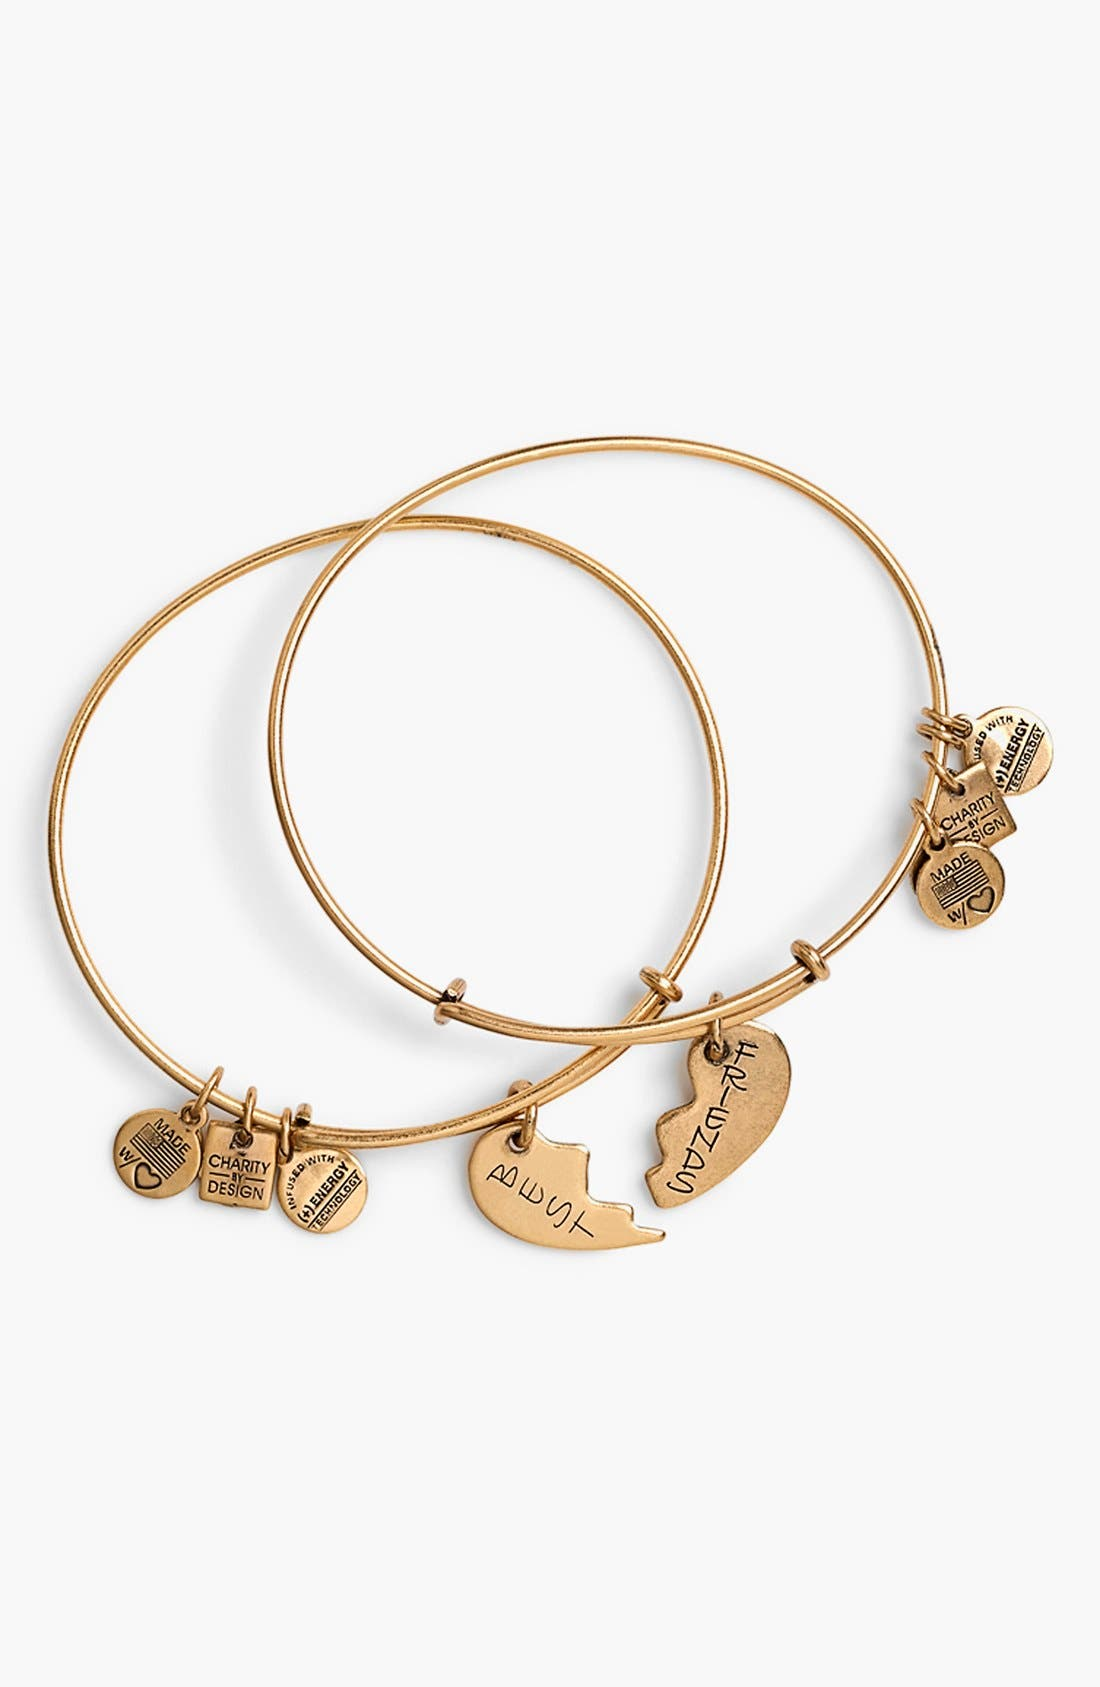 Alex and Ani 'Charity by Design - Best Friends' Adjustable Wire Bangles (Set of 2)